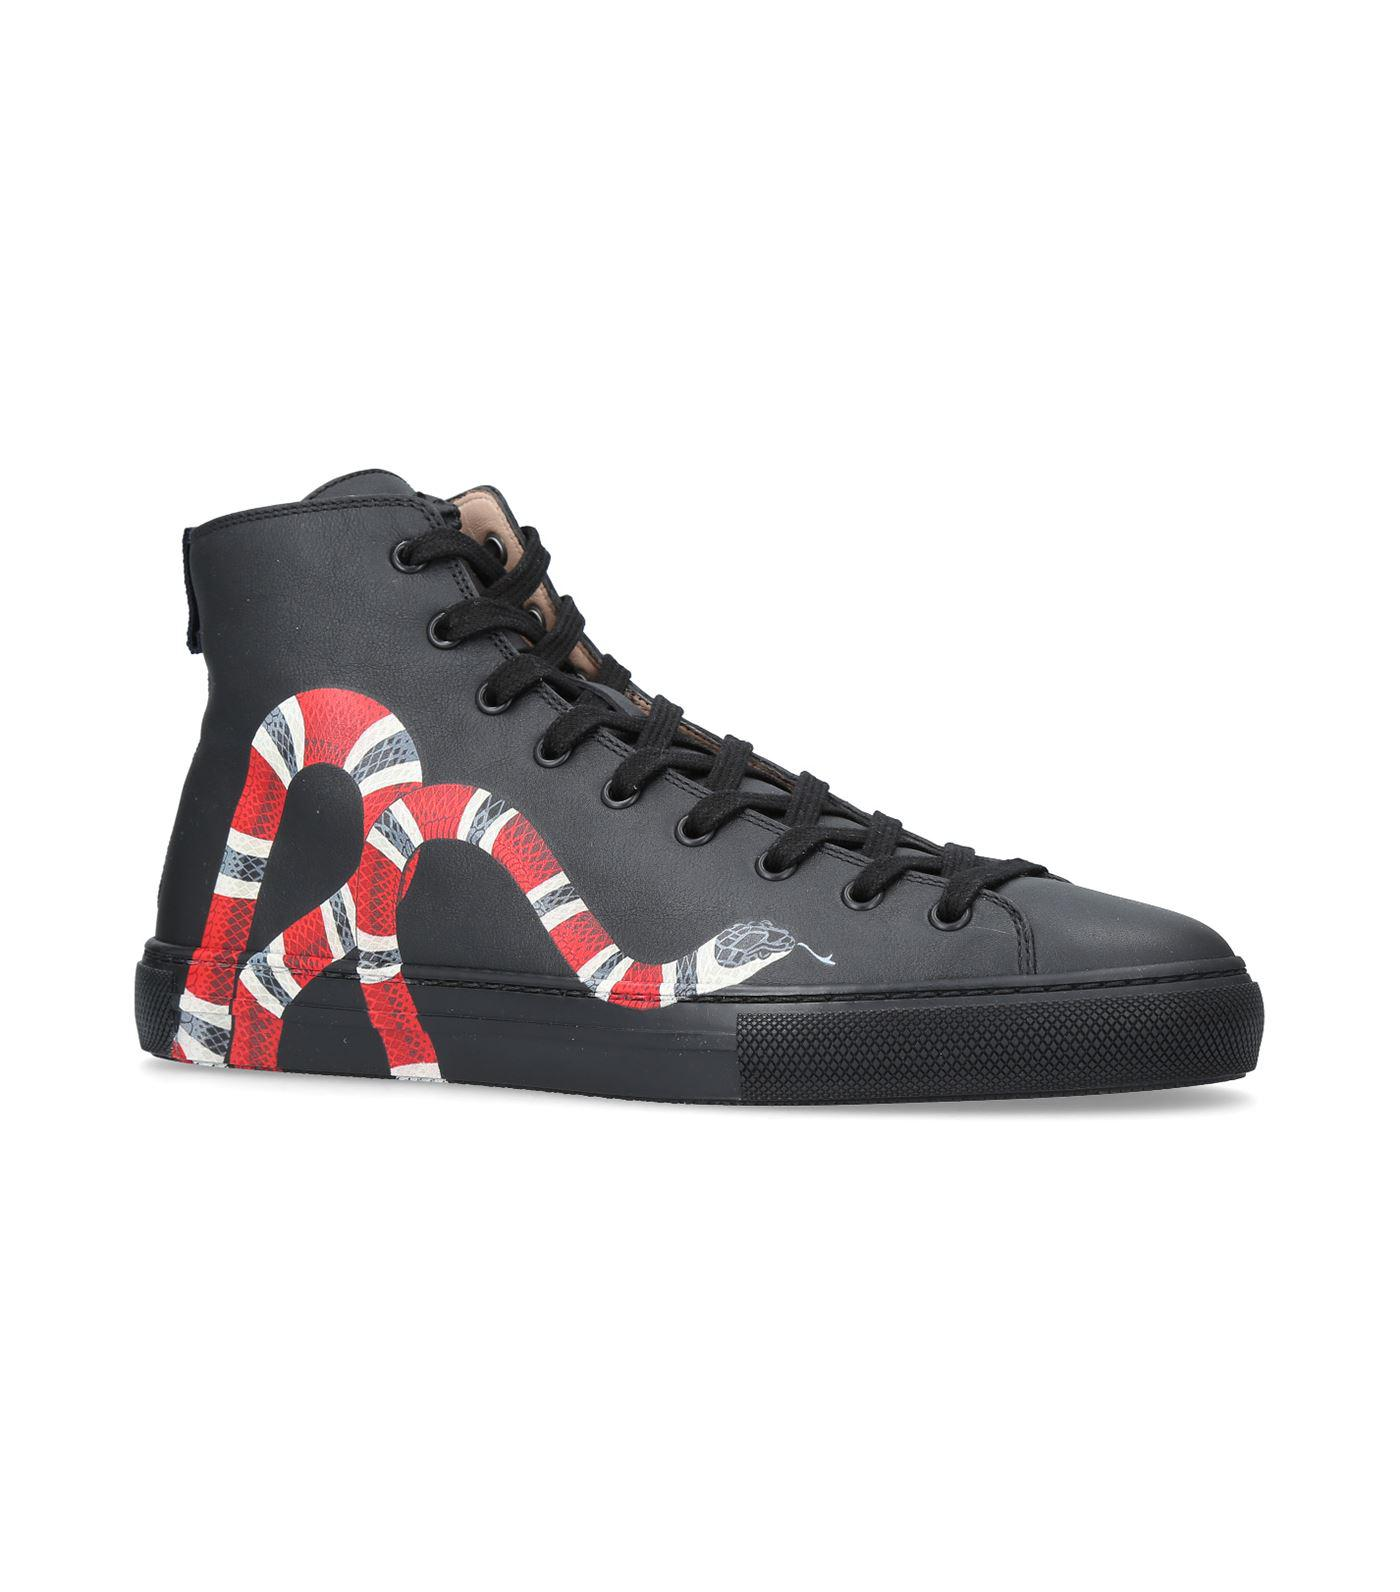 Gucci Leather Major Snake High-tops in